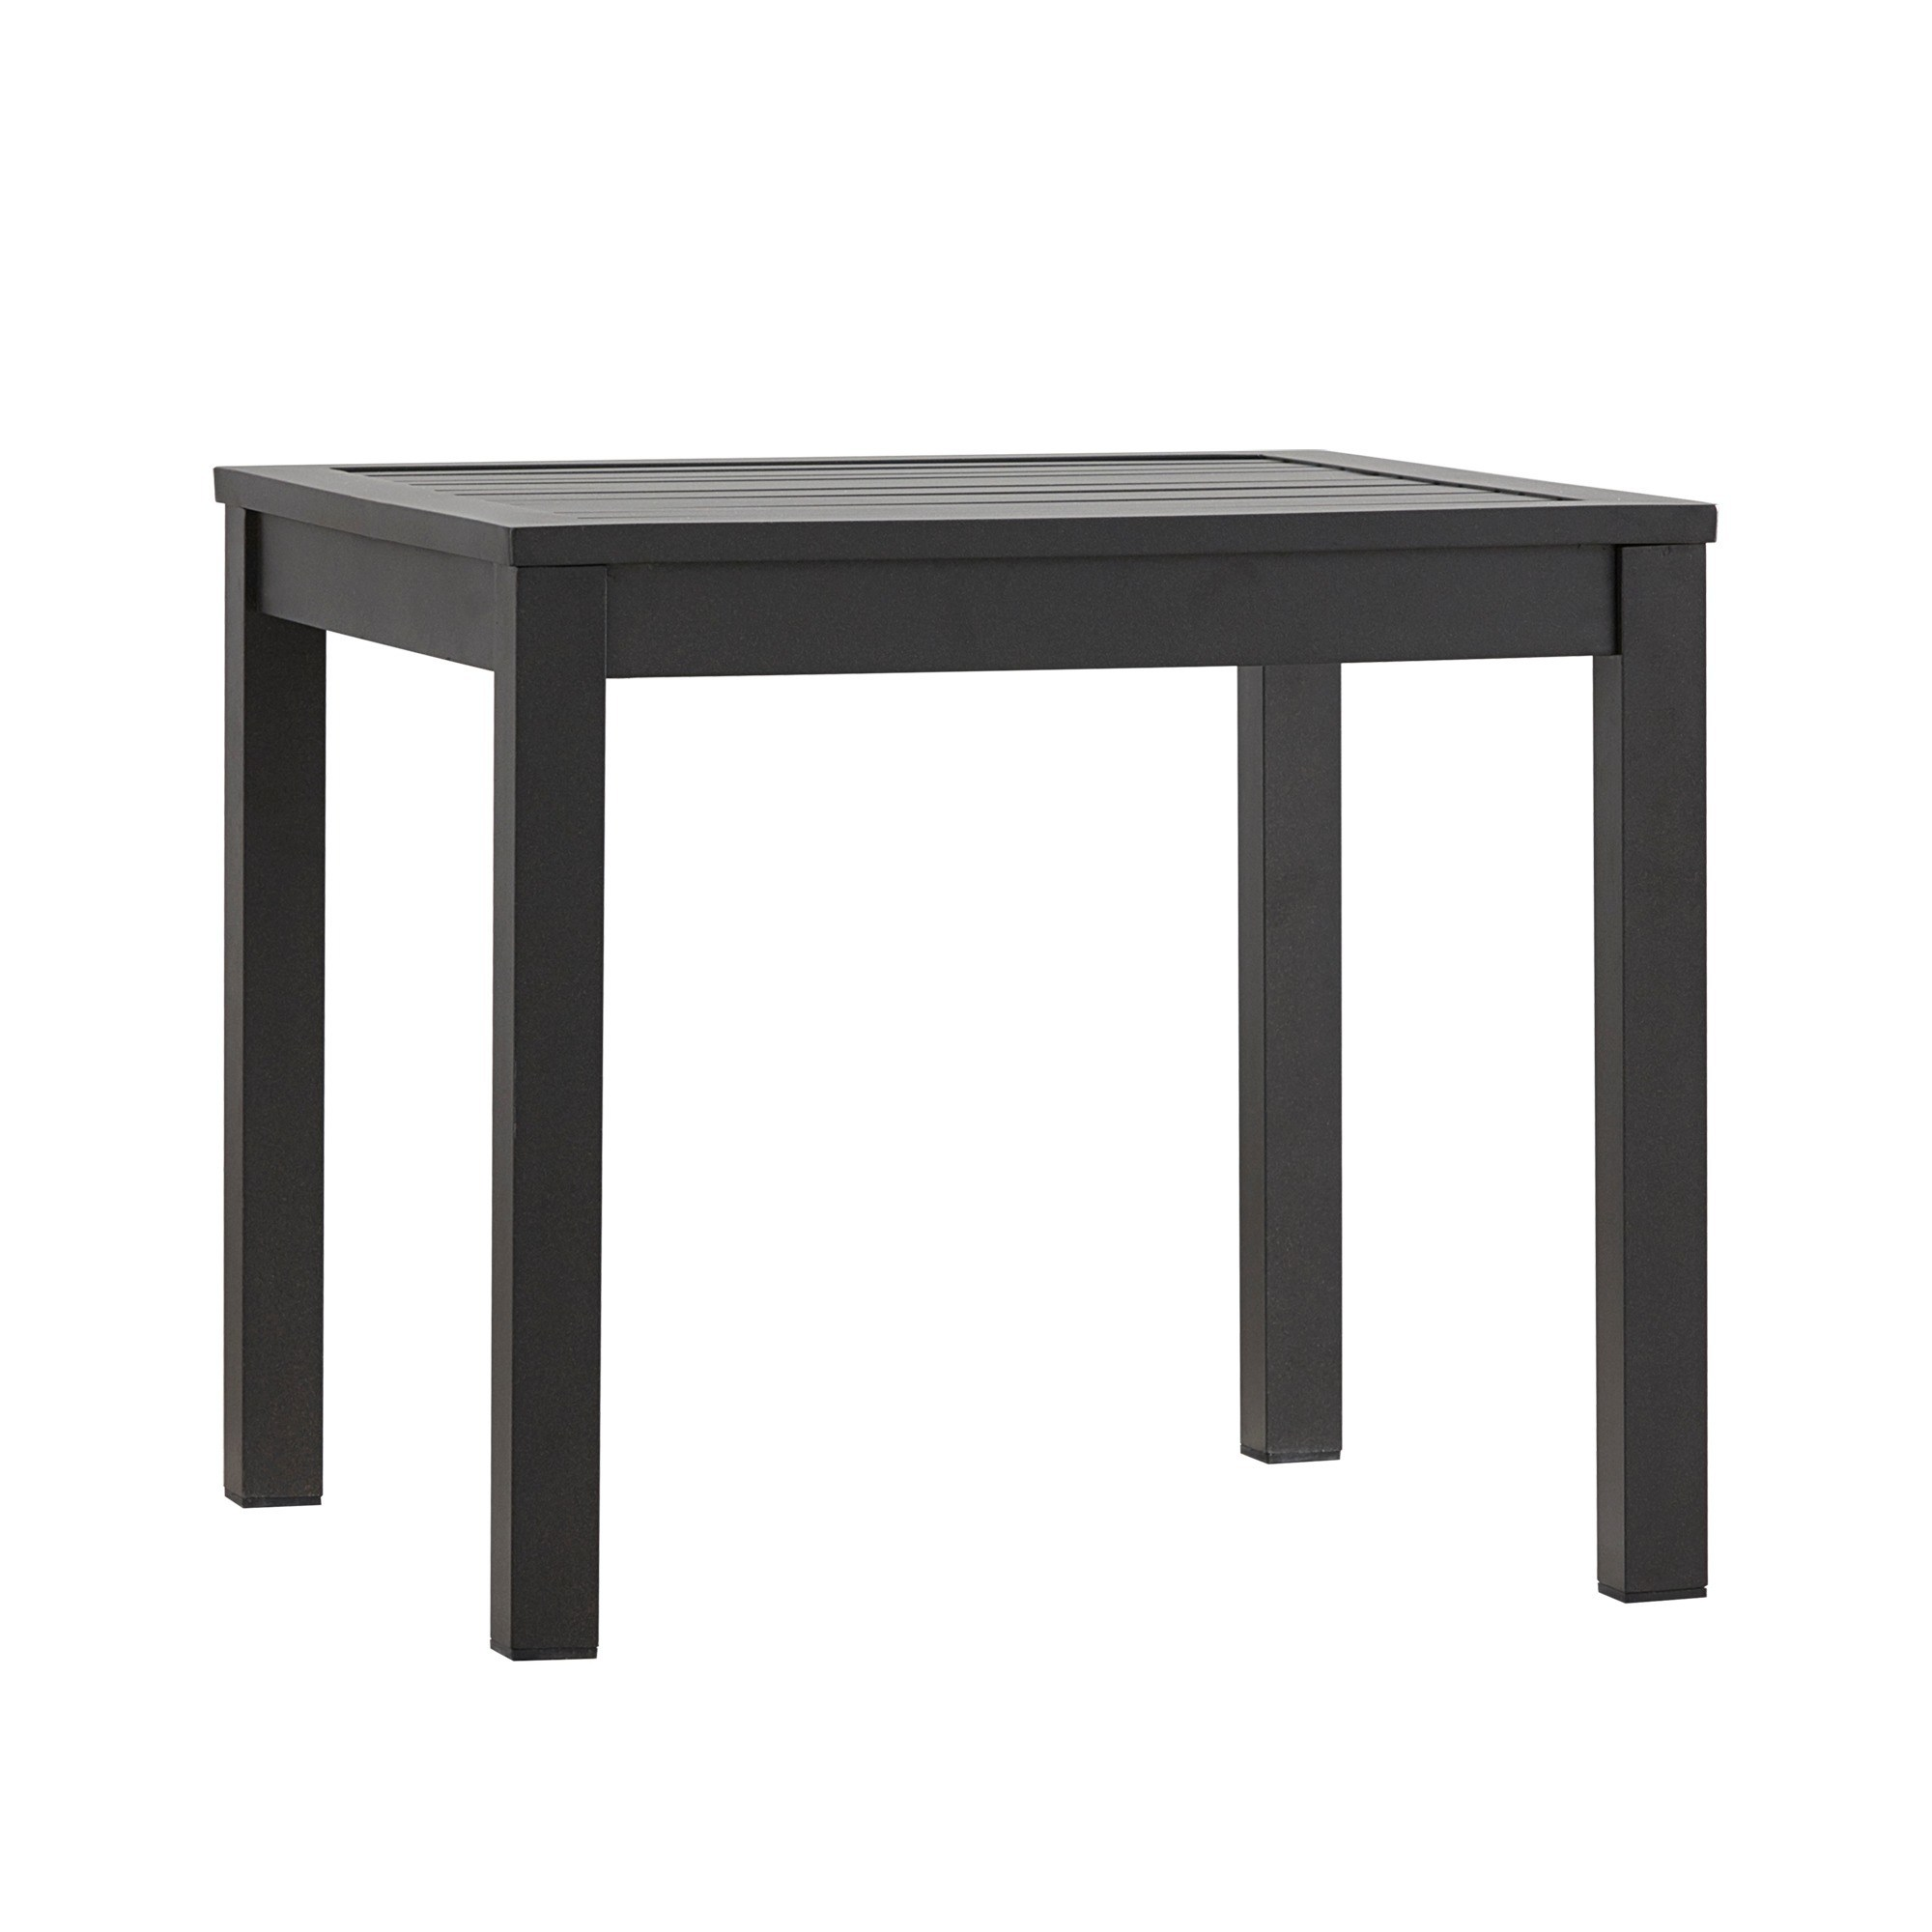 matira metal patio accent side table inspire oasis cushioned ott napa living free shipping today rattan furniture covers mirrored tables for bedroom glass end and coffee outdoor